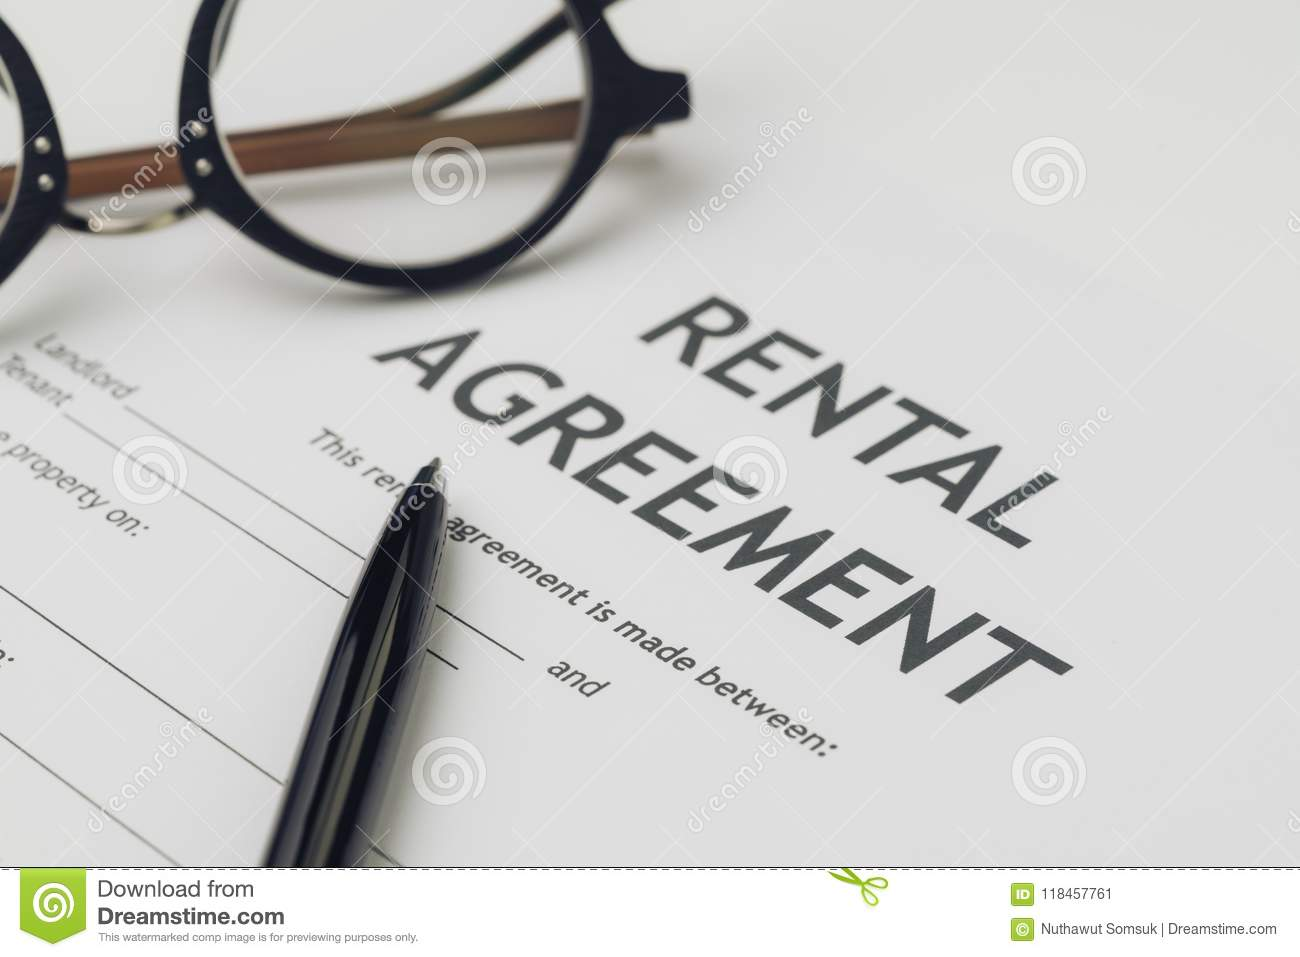 Property or real estate, house and home concept, pen and eyeglasses on rental agreement printed document, ready to sign contract